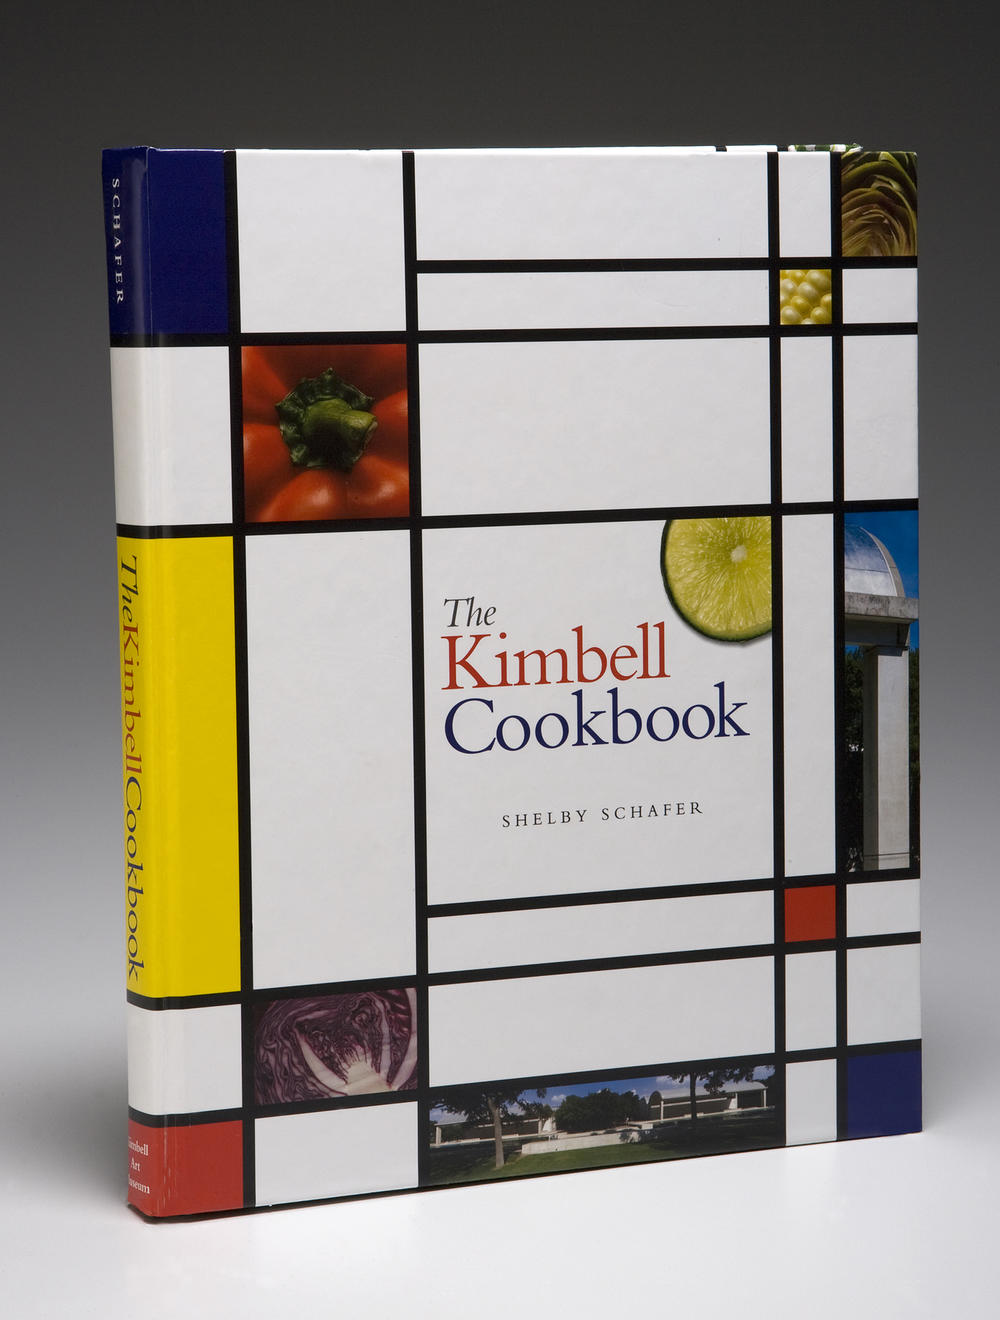 Kimbell Art Museum Cookbook by Shelby Schafer